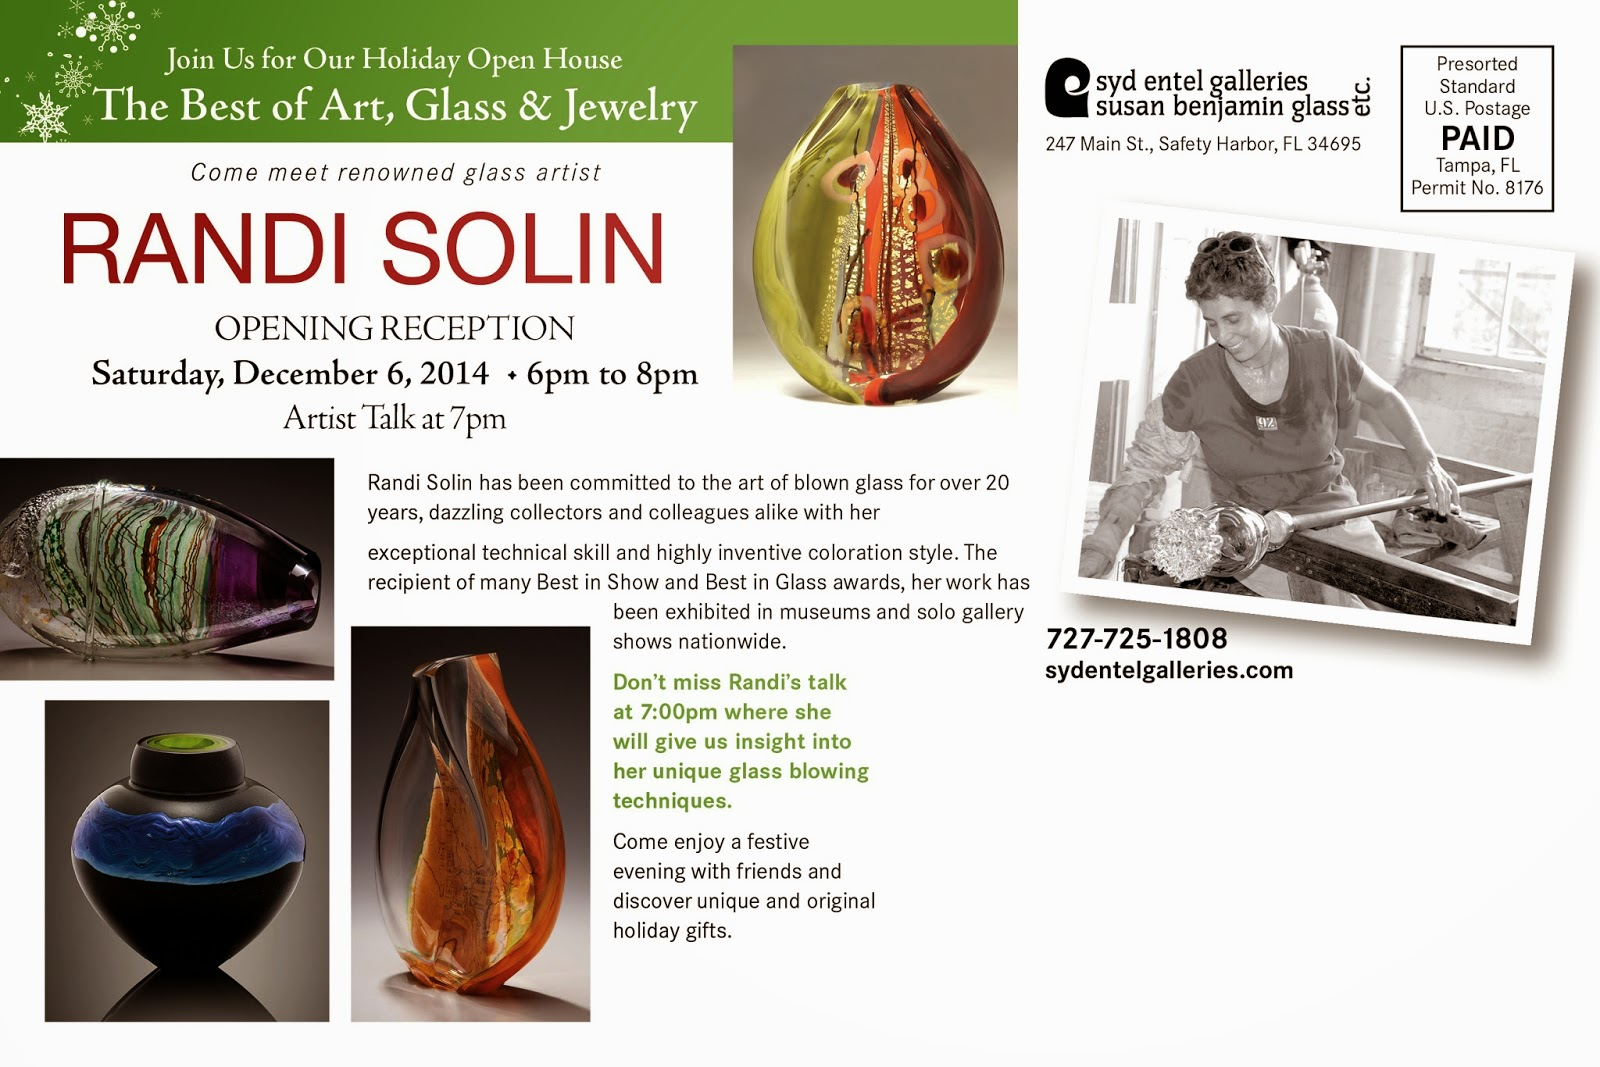 http://www.sydentelgalleries.com/events.html